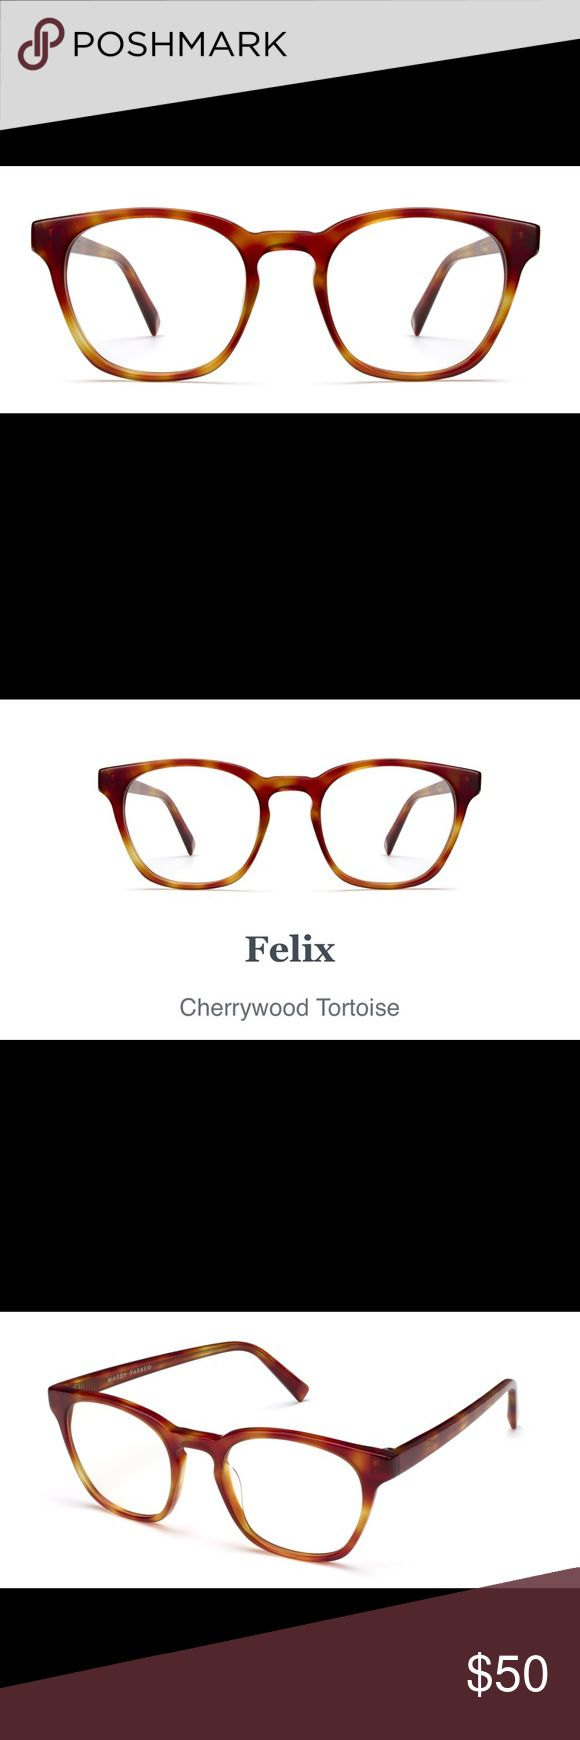 Warby Parker Felix in Cherrywood Tortoise NWT Warby